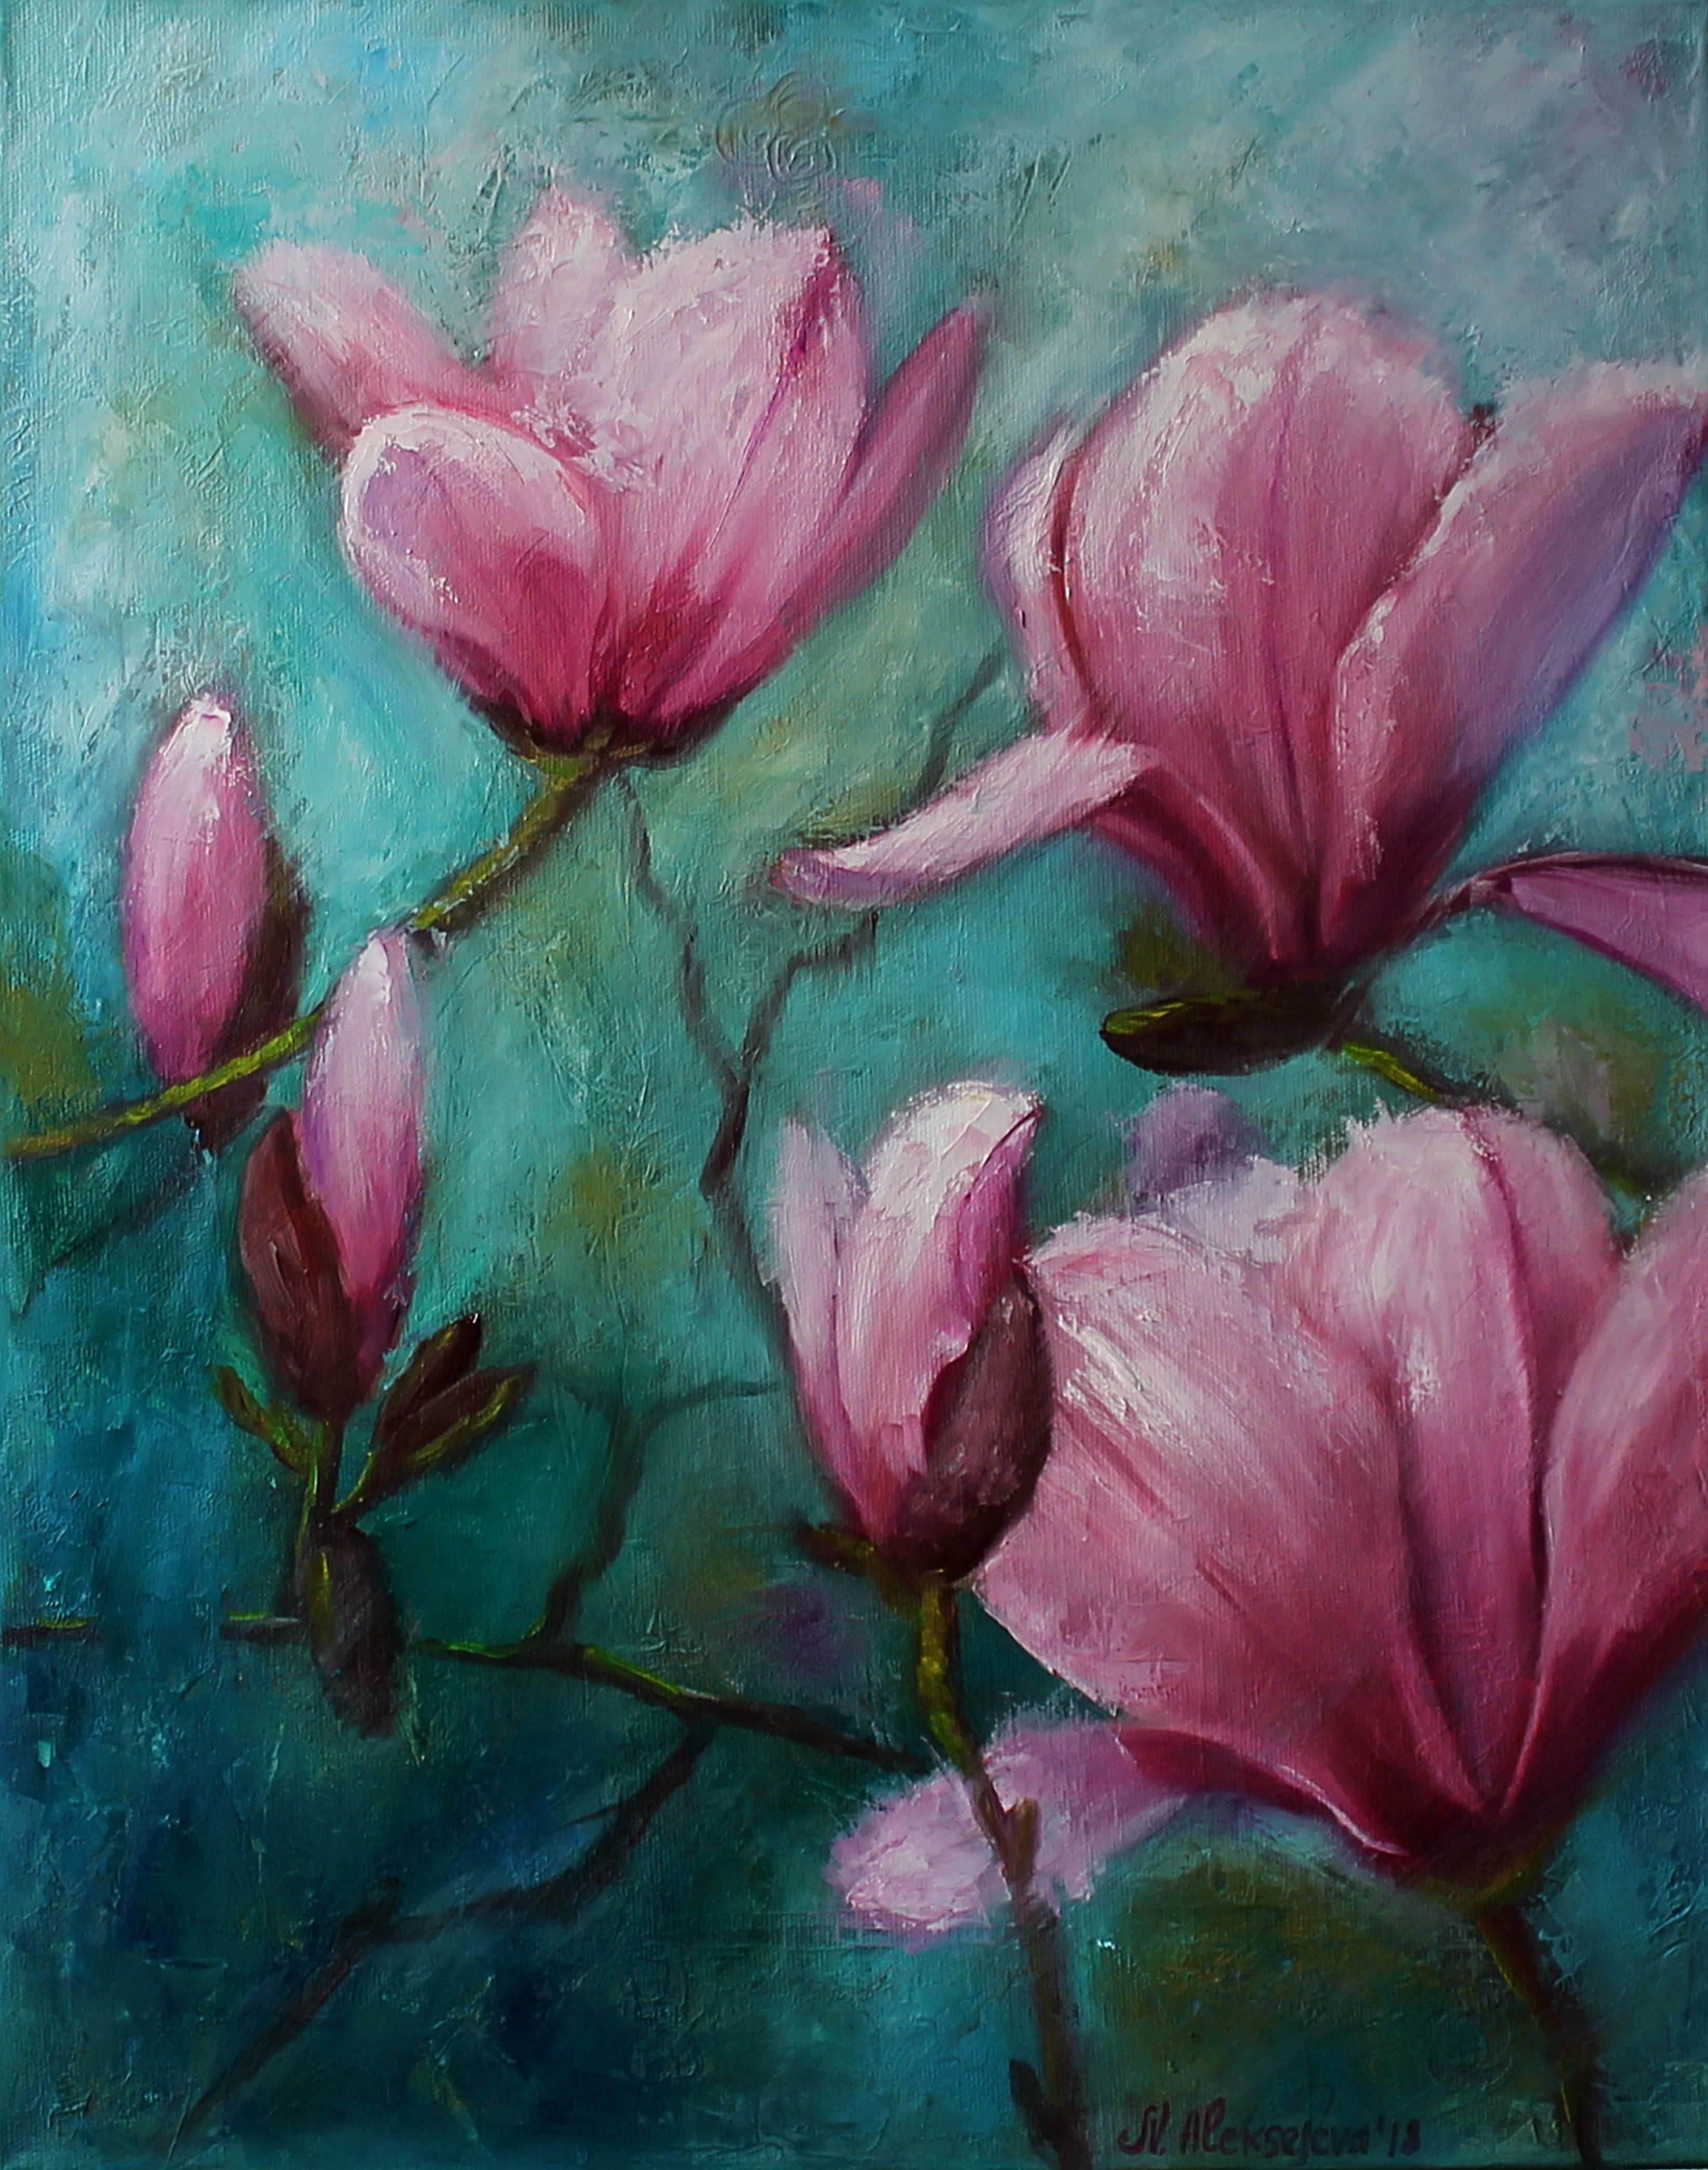 Details About Original Oil Painting Flowers Pink Magnolia Art Work